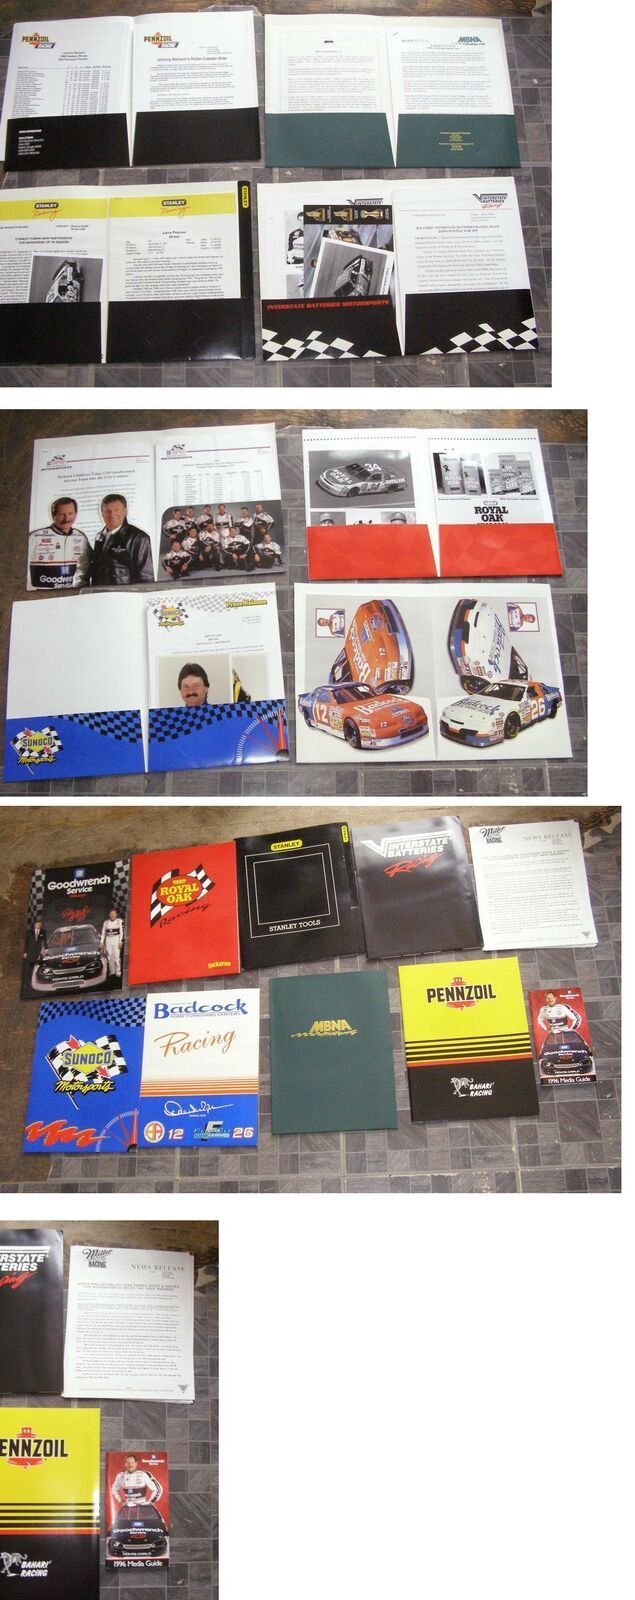 NASCAR Racing Kits Larry Pearson Bobby Labonte Rusty Wallace +